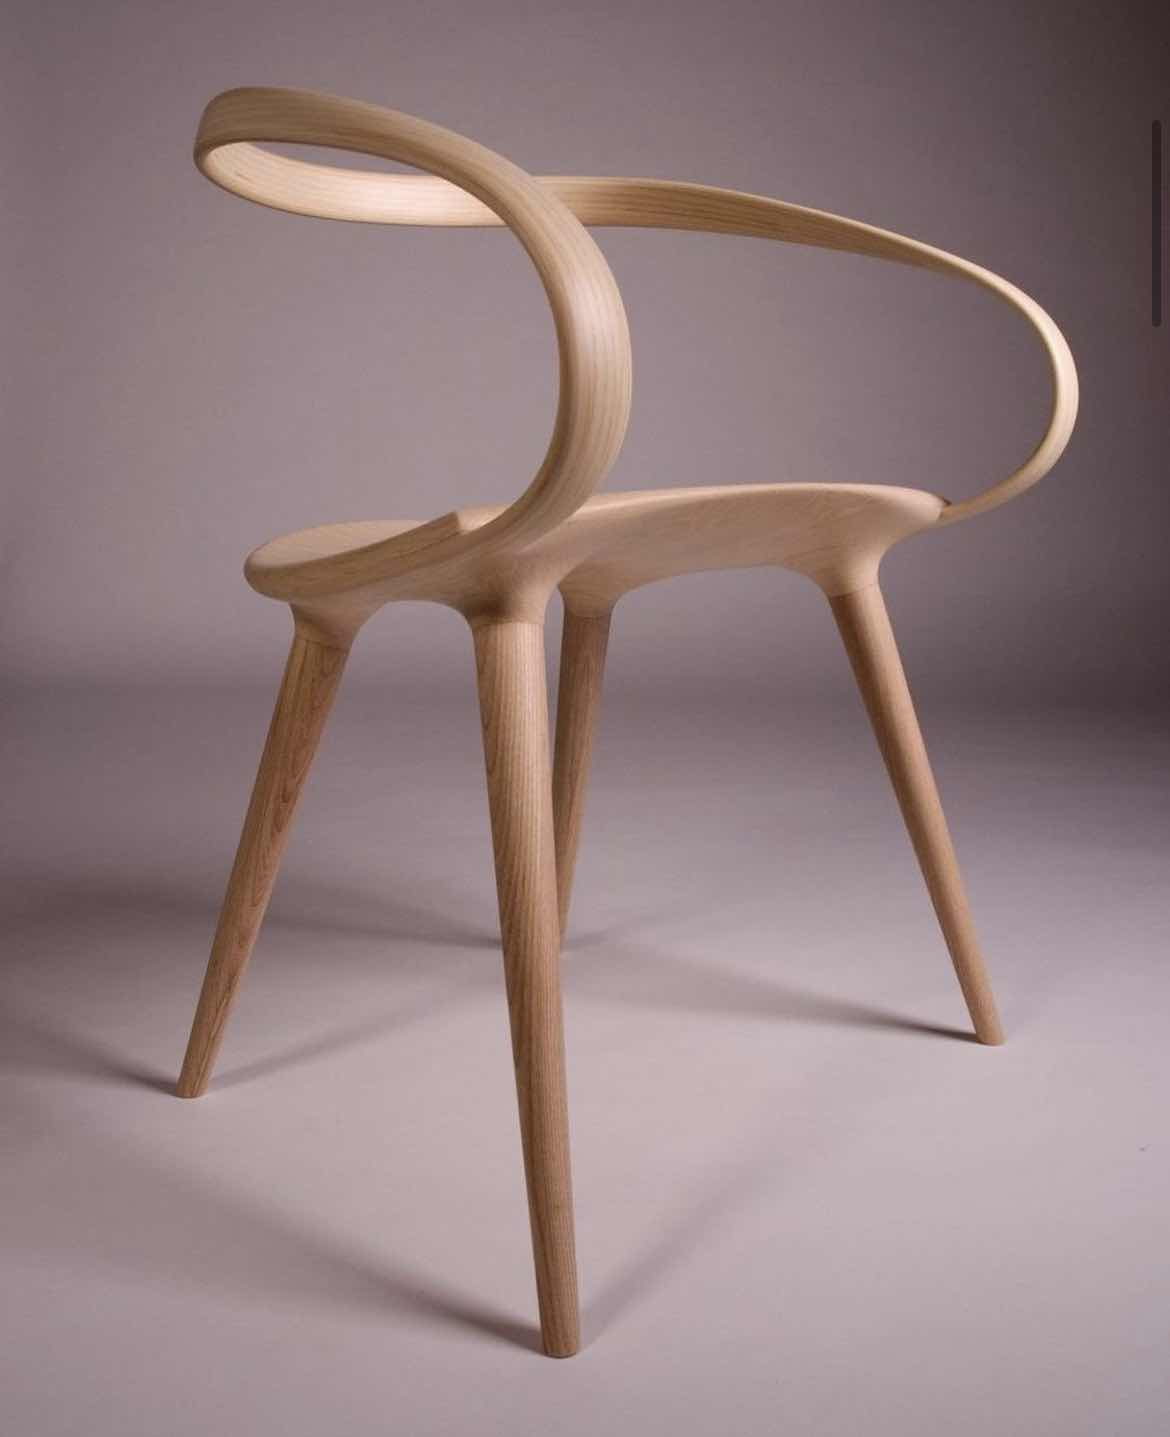 The Velo Chair